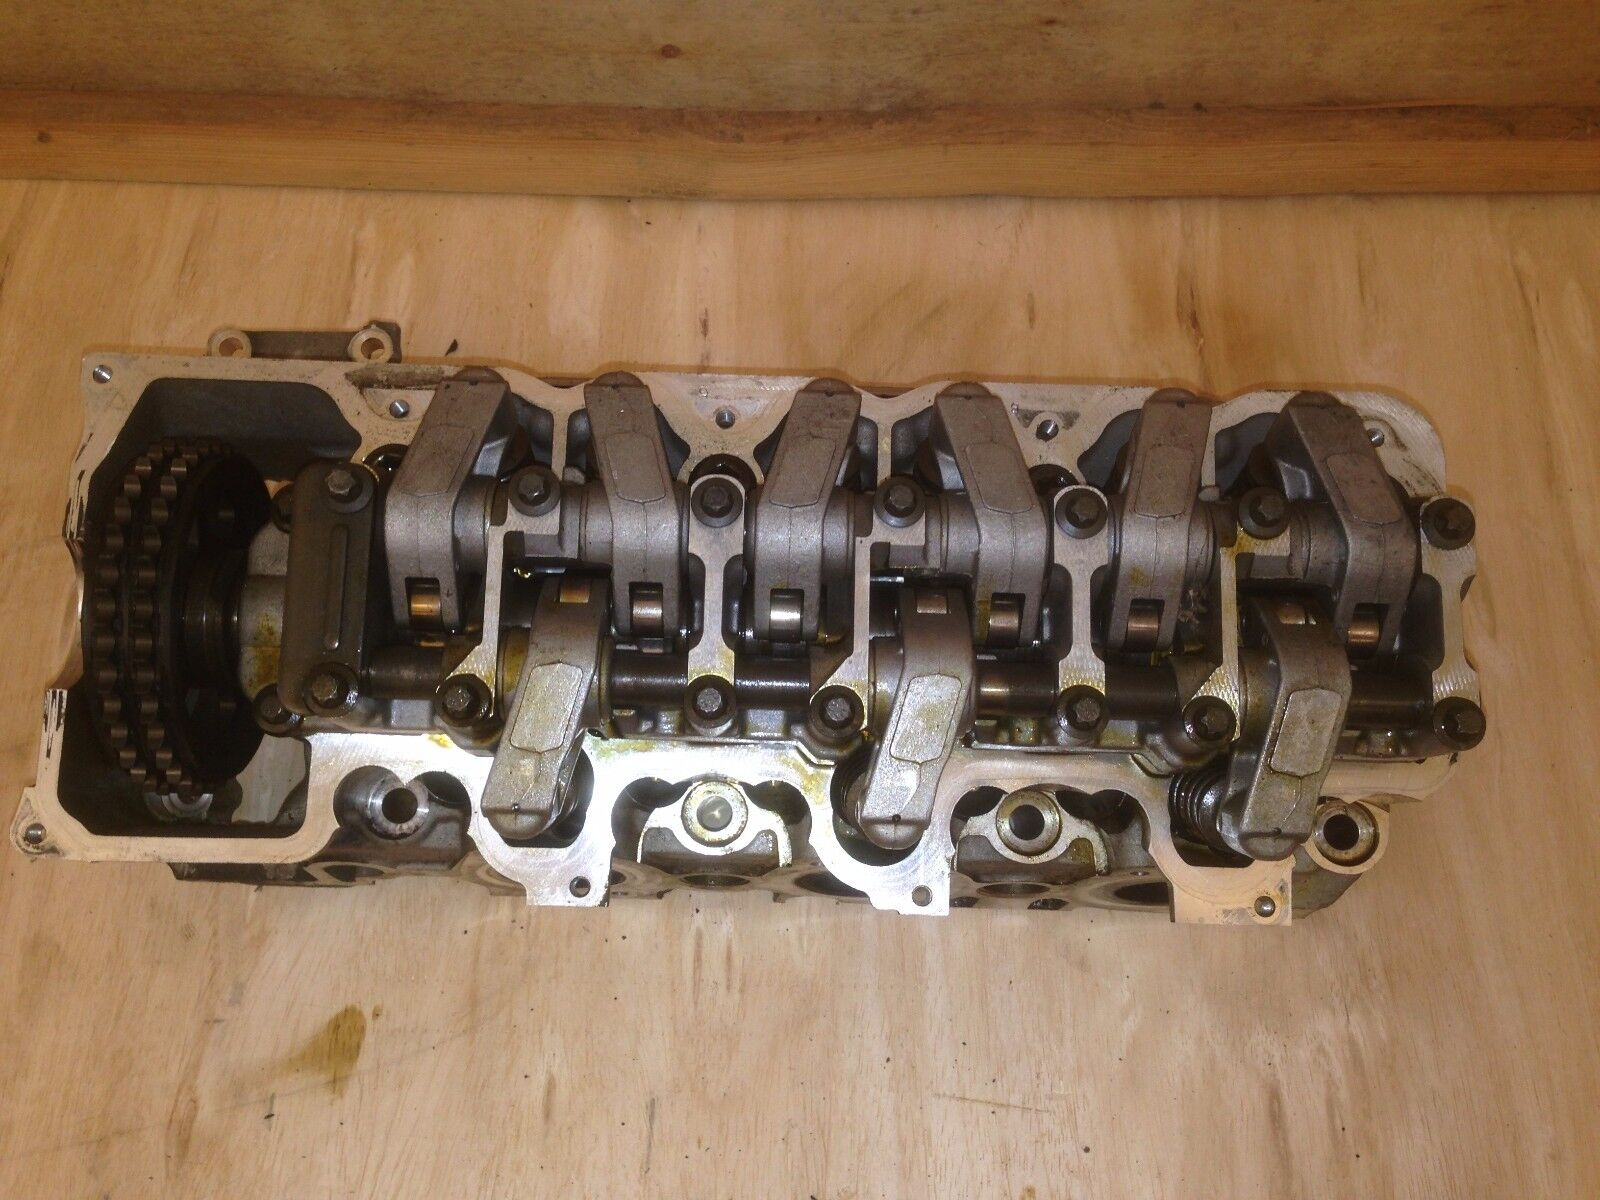 Used Mercedes-Benz C230 Cylinder Heads and Parts for Sale